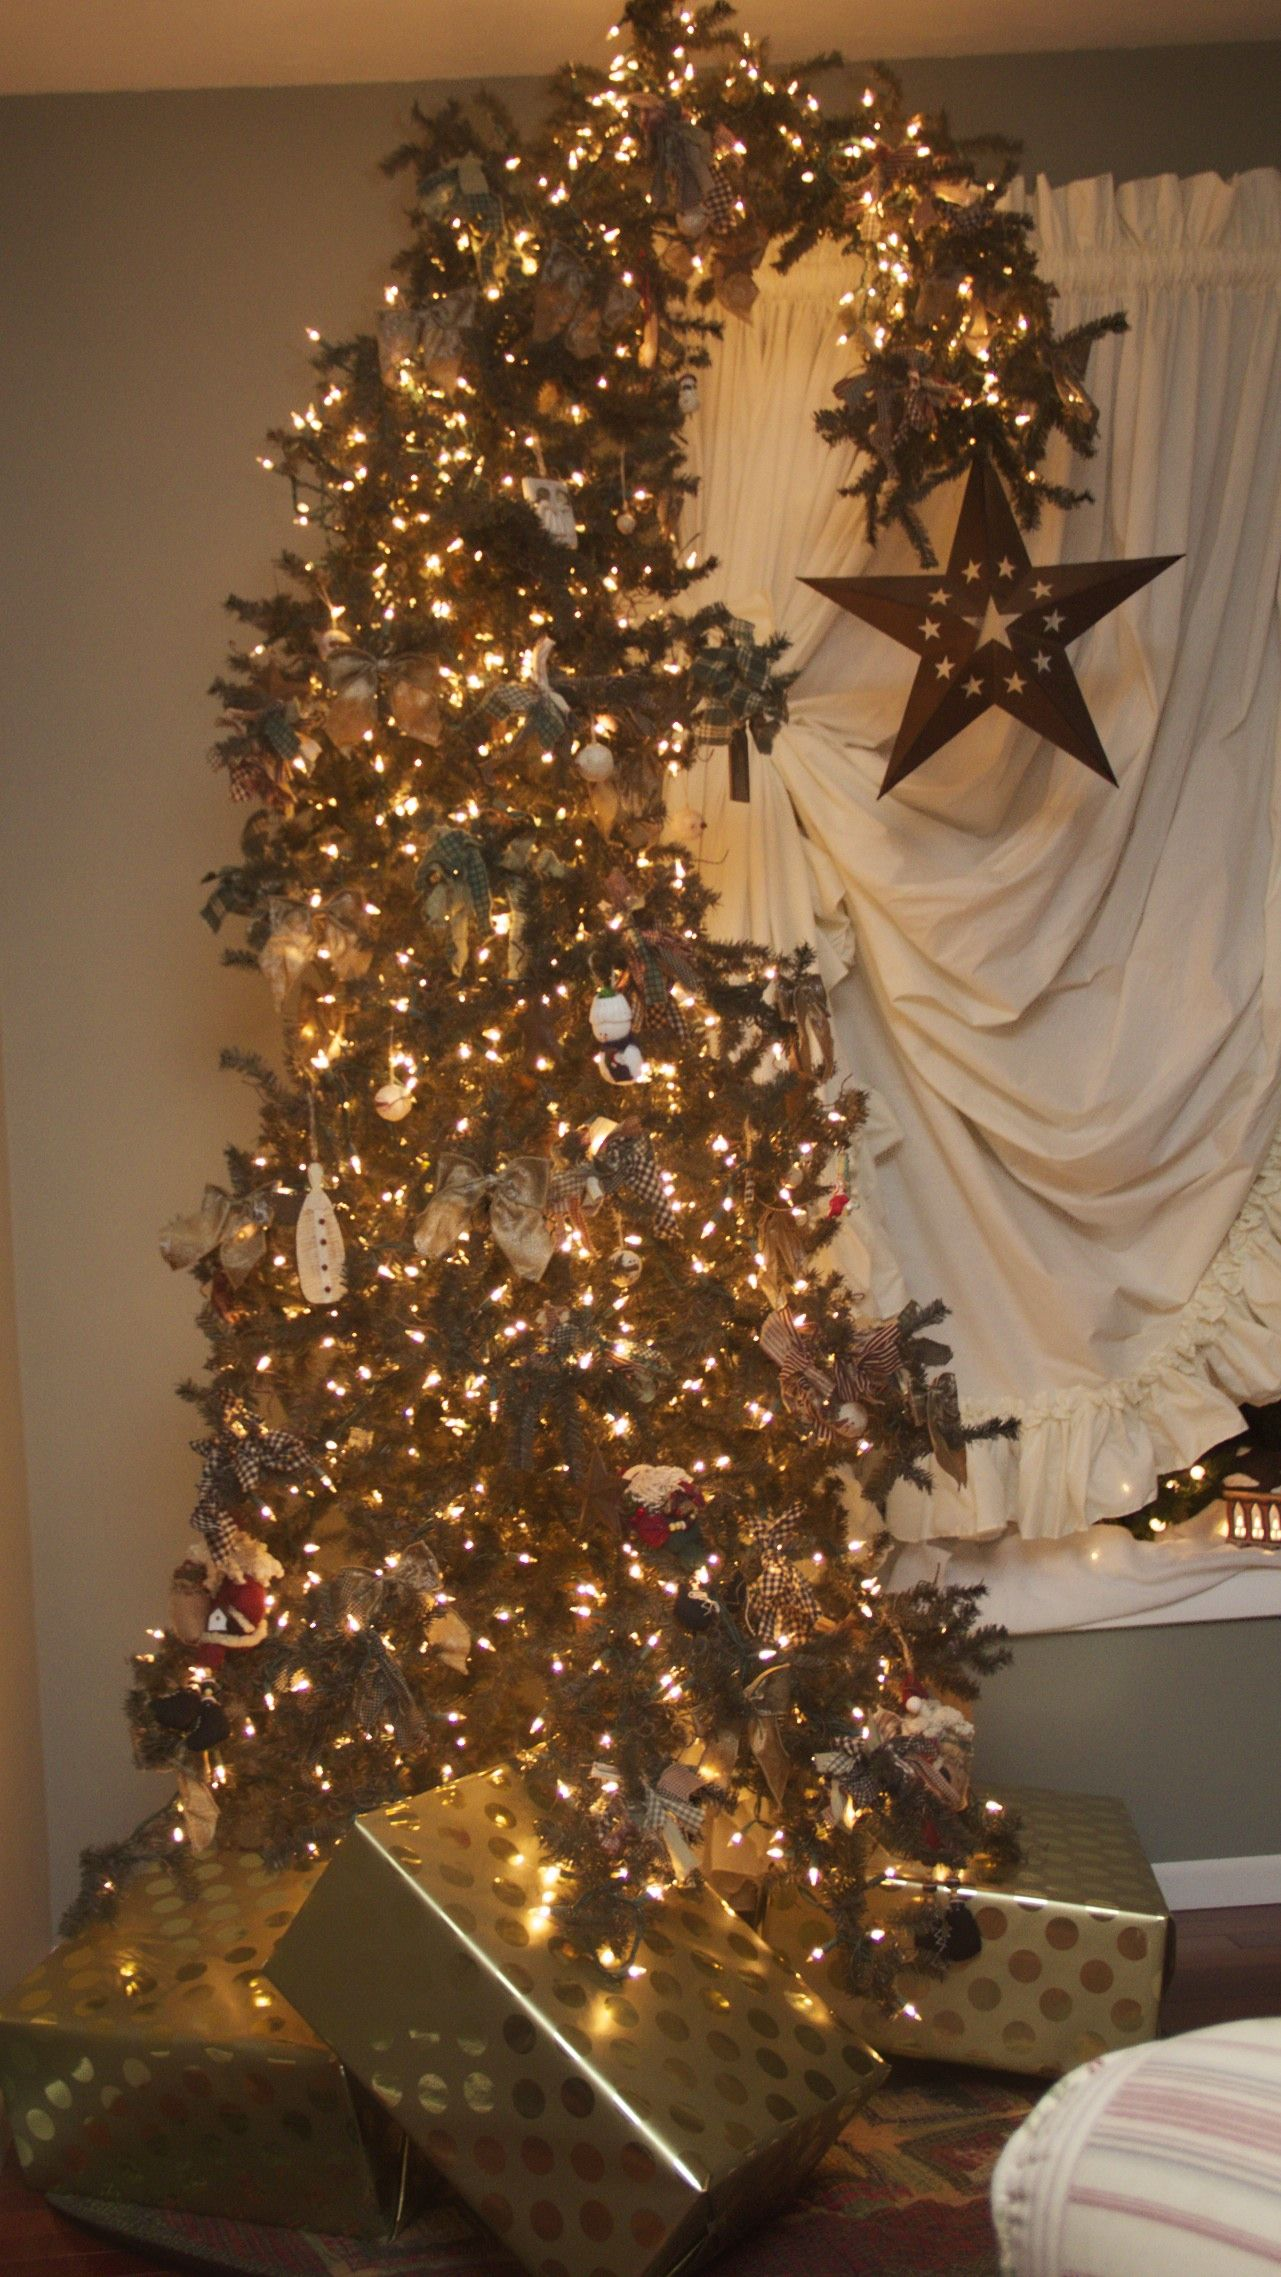 The Leaning Christmas Tree The Story Behind The Tree My Tree Caught A Falling Star Boho Christmas Tree Christmas Tree Outdoor Christmas Decorations